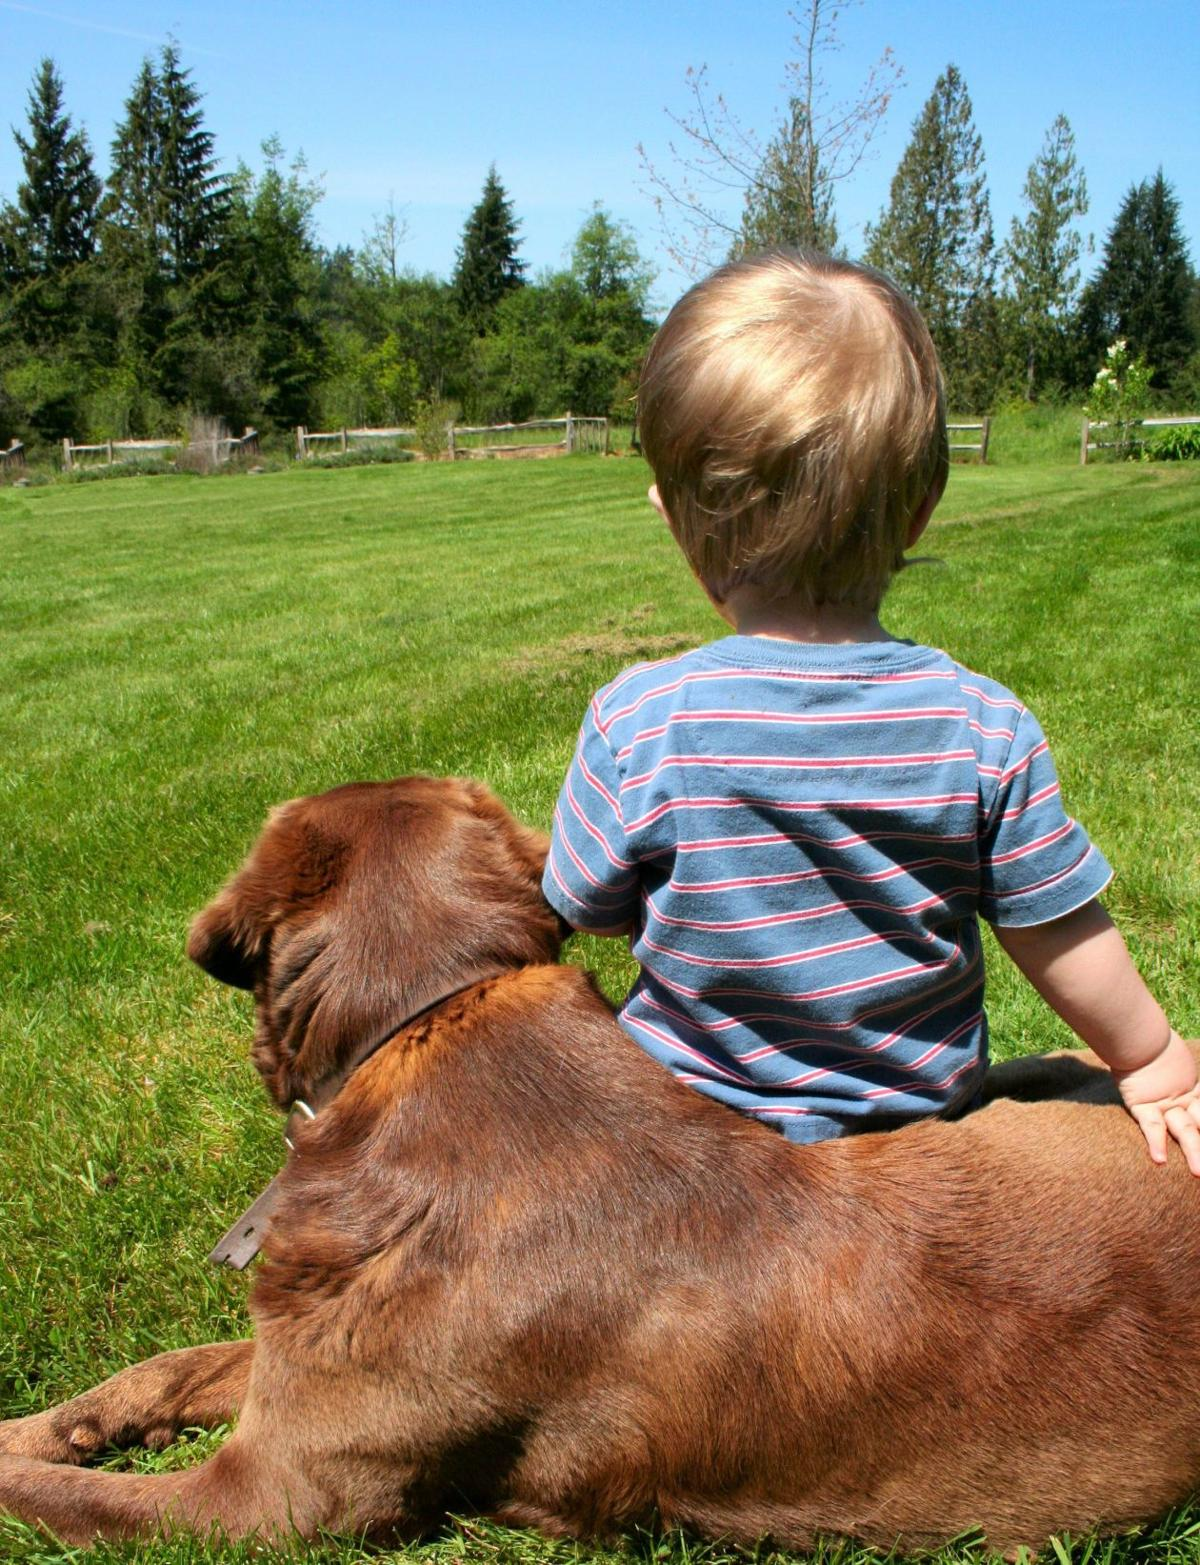 Help your dog, baby live in harmonyPreparation key to dog-child safety